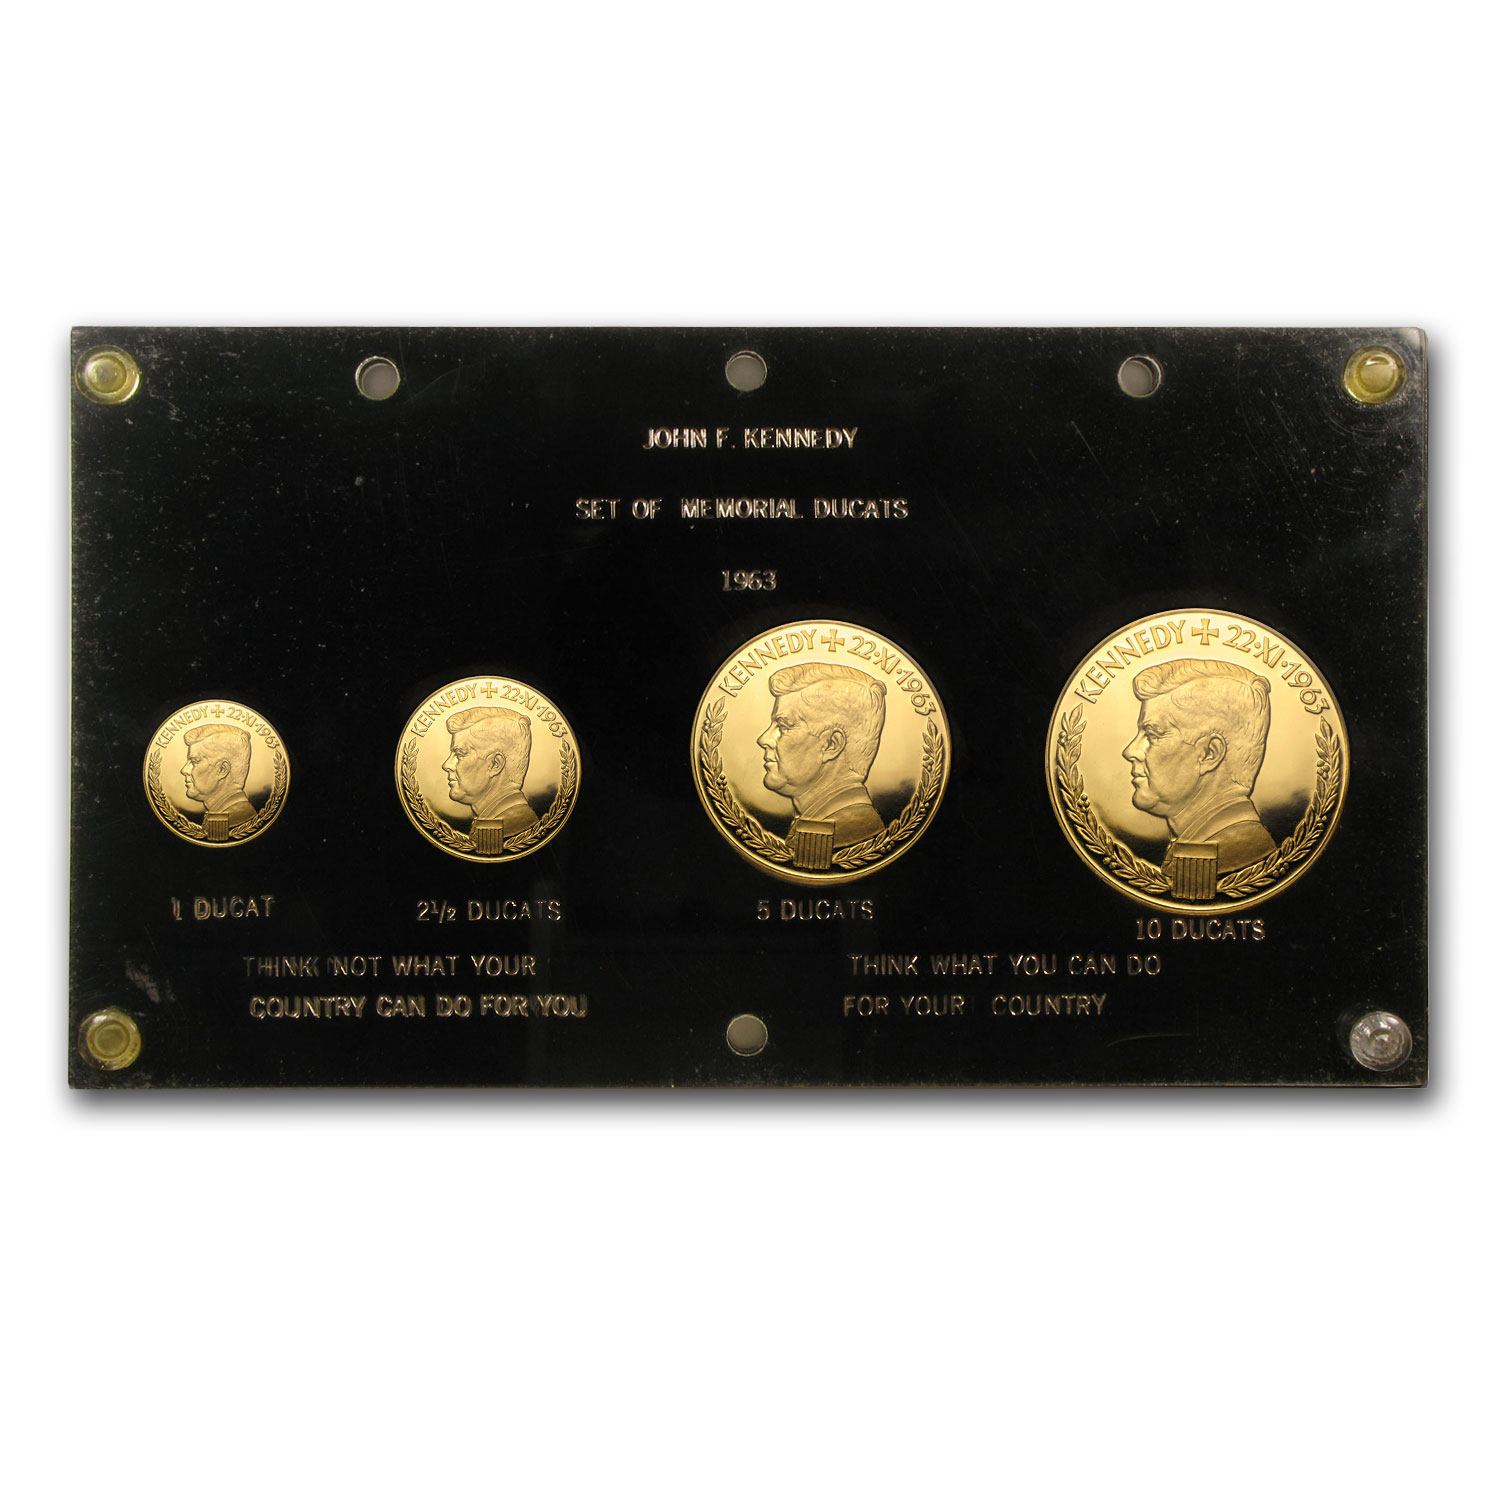 Germany 1963 Gold Medallic set - JFK - AGW 2.0109